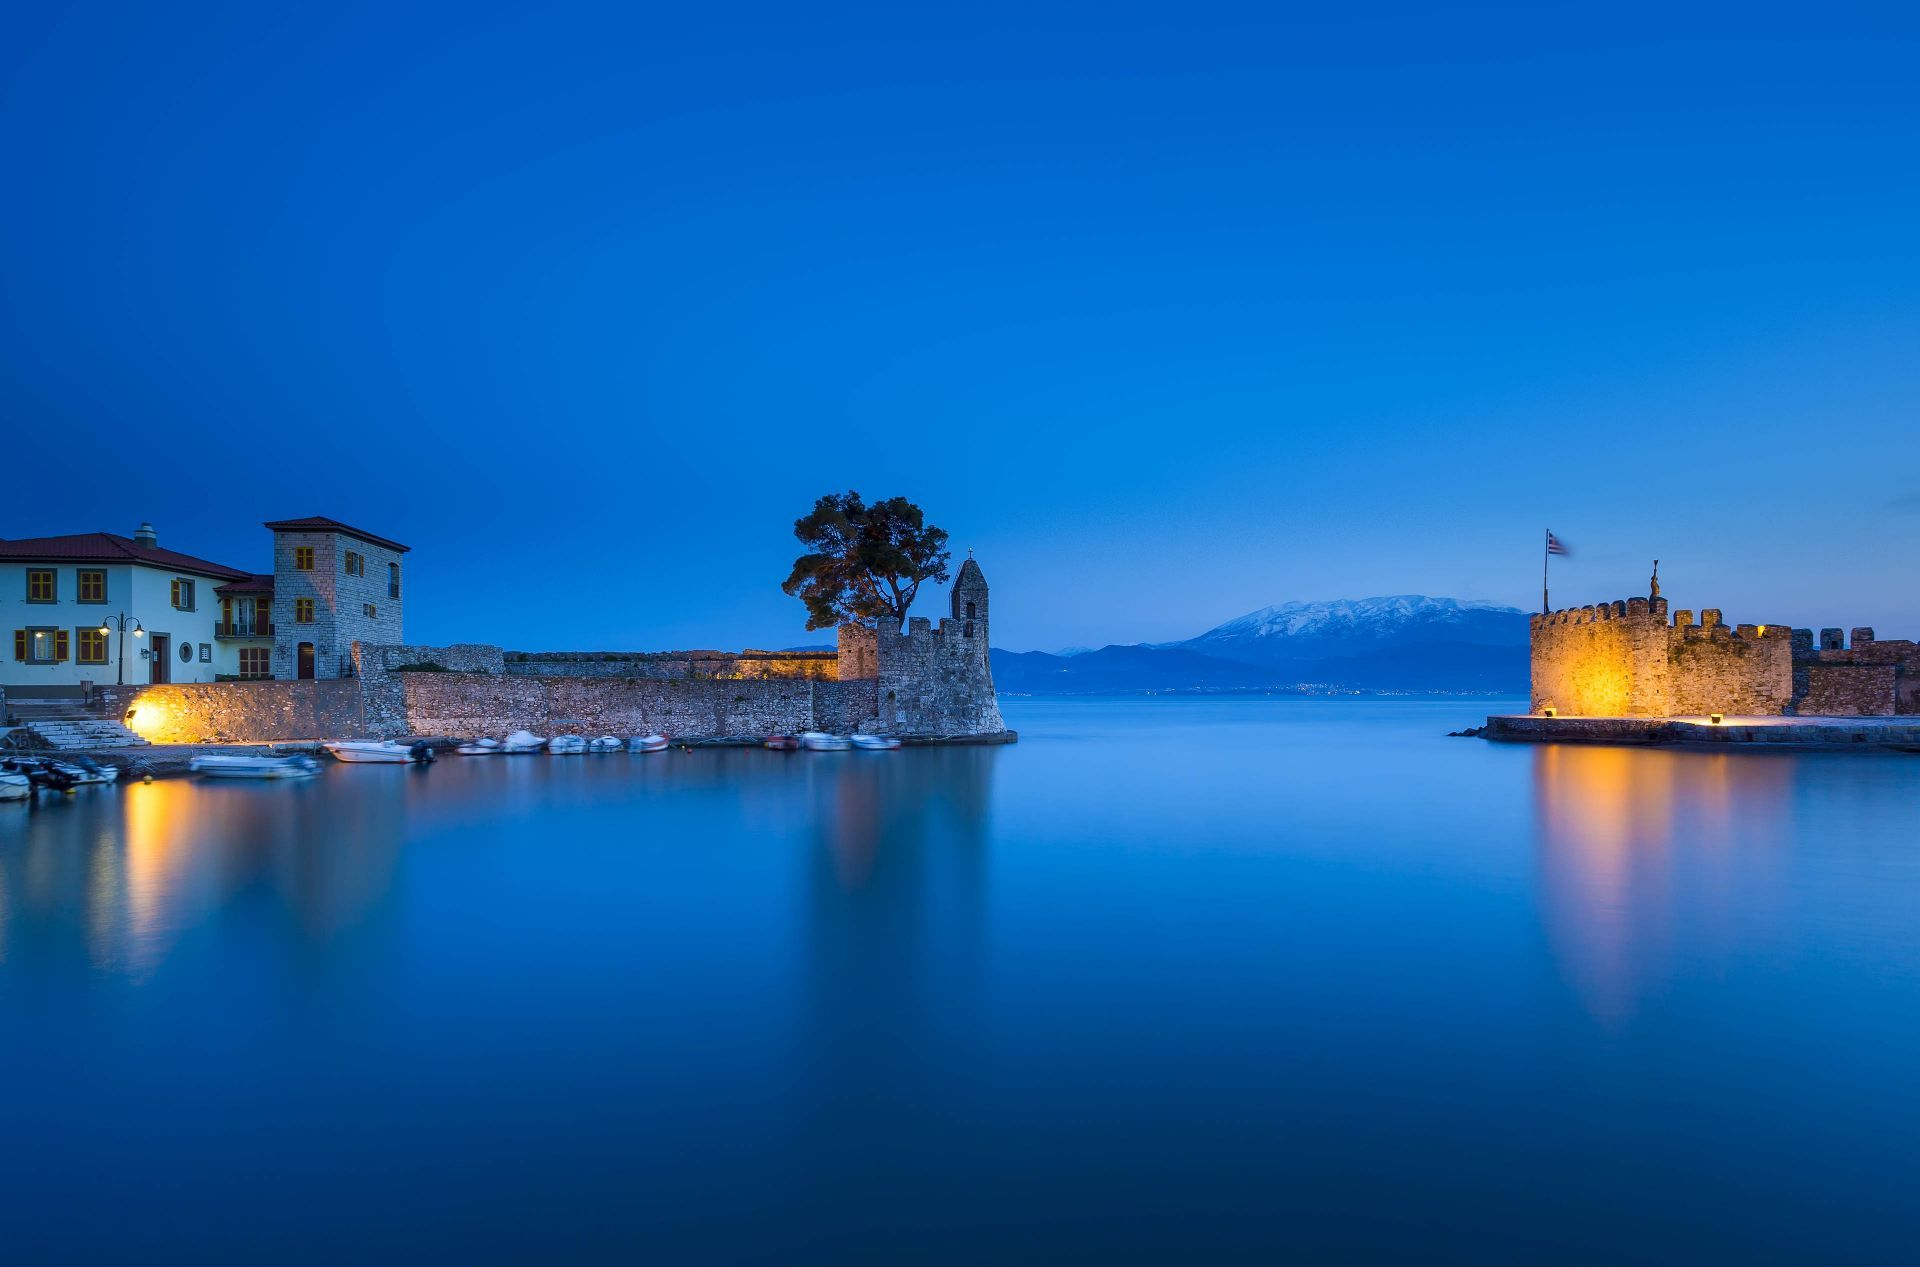 Sterea: The medieval town of Nafpaktos